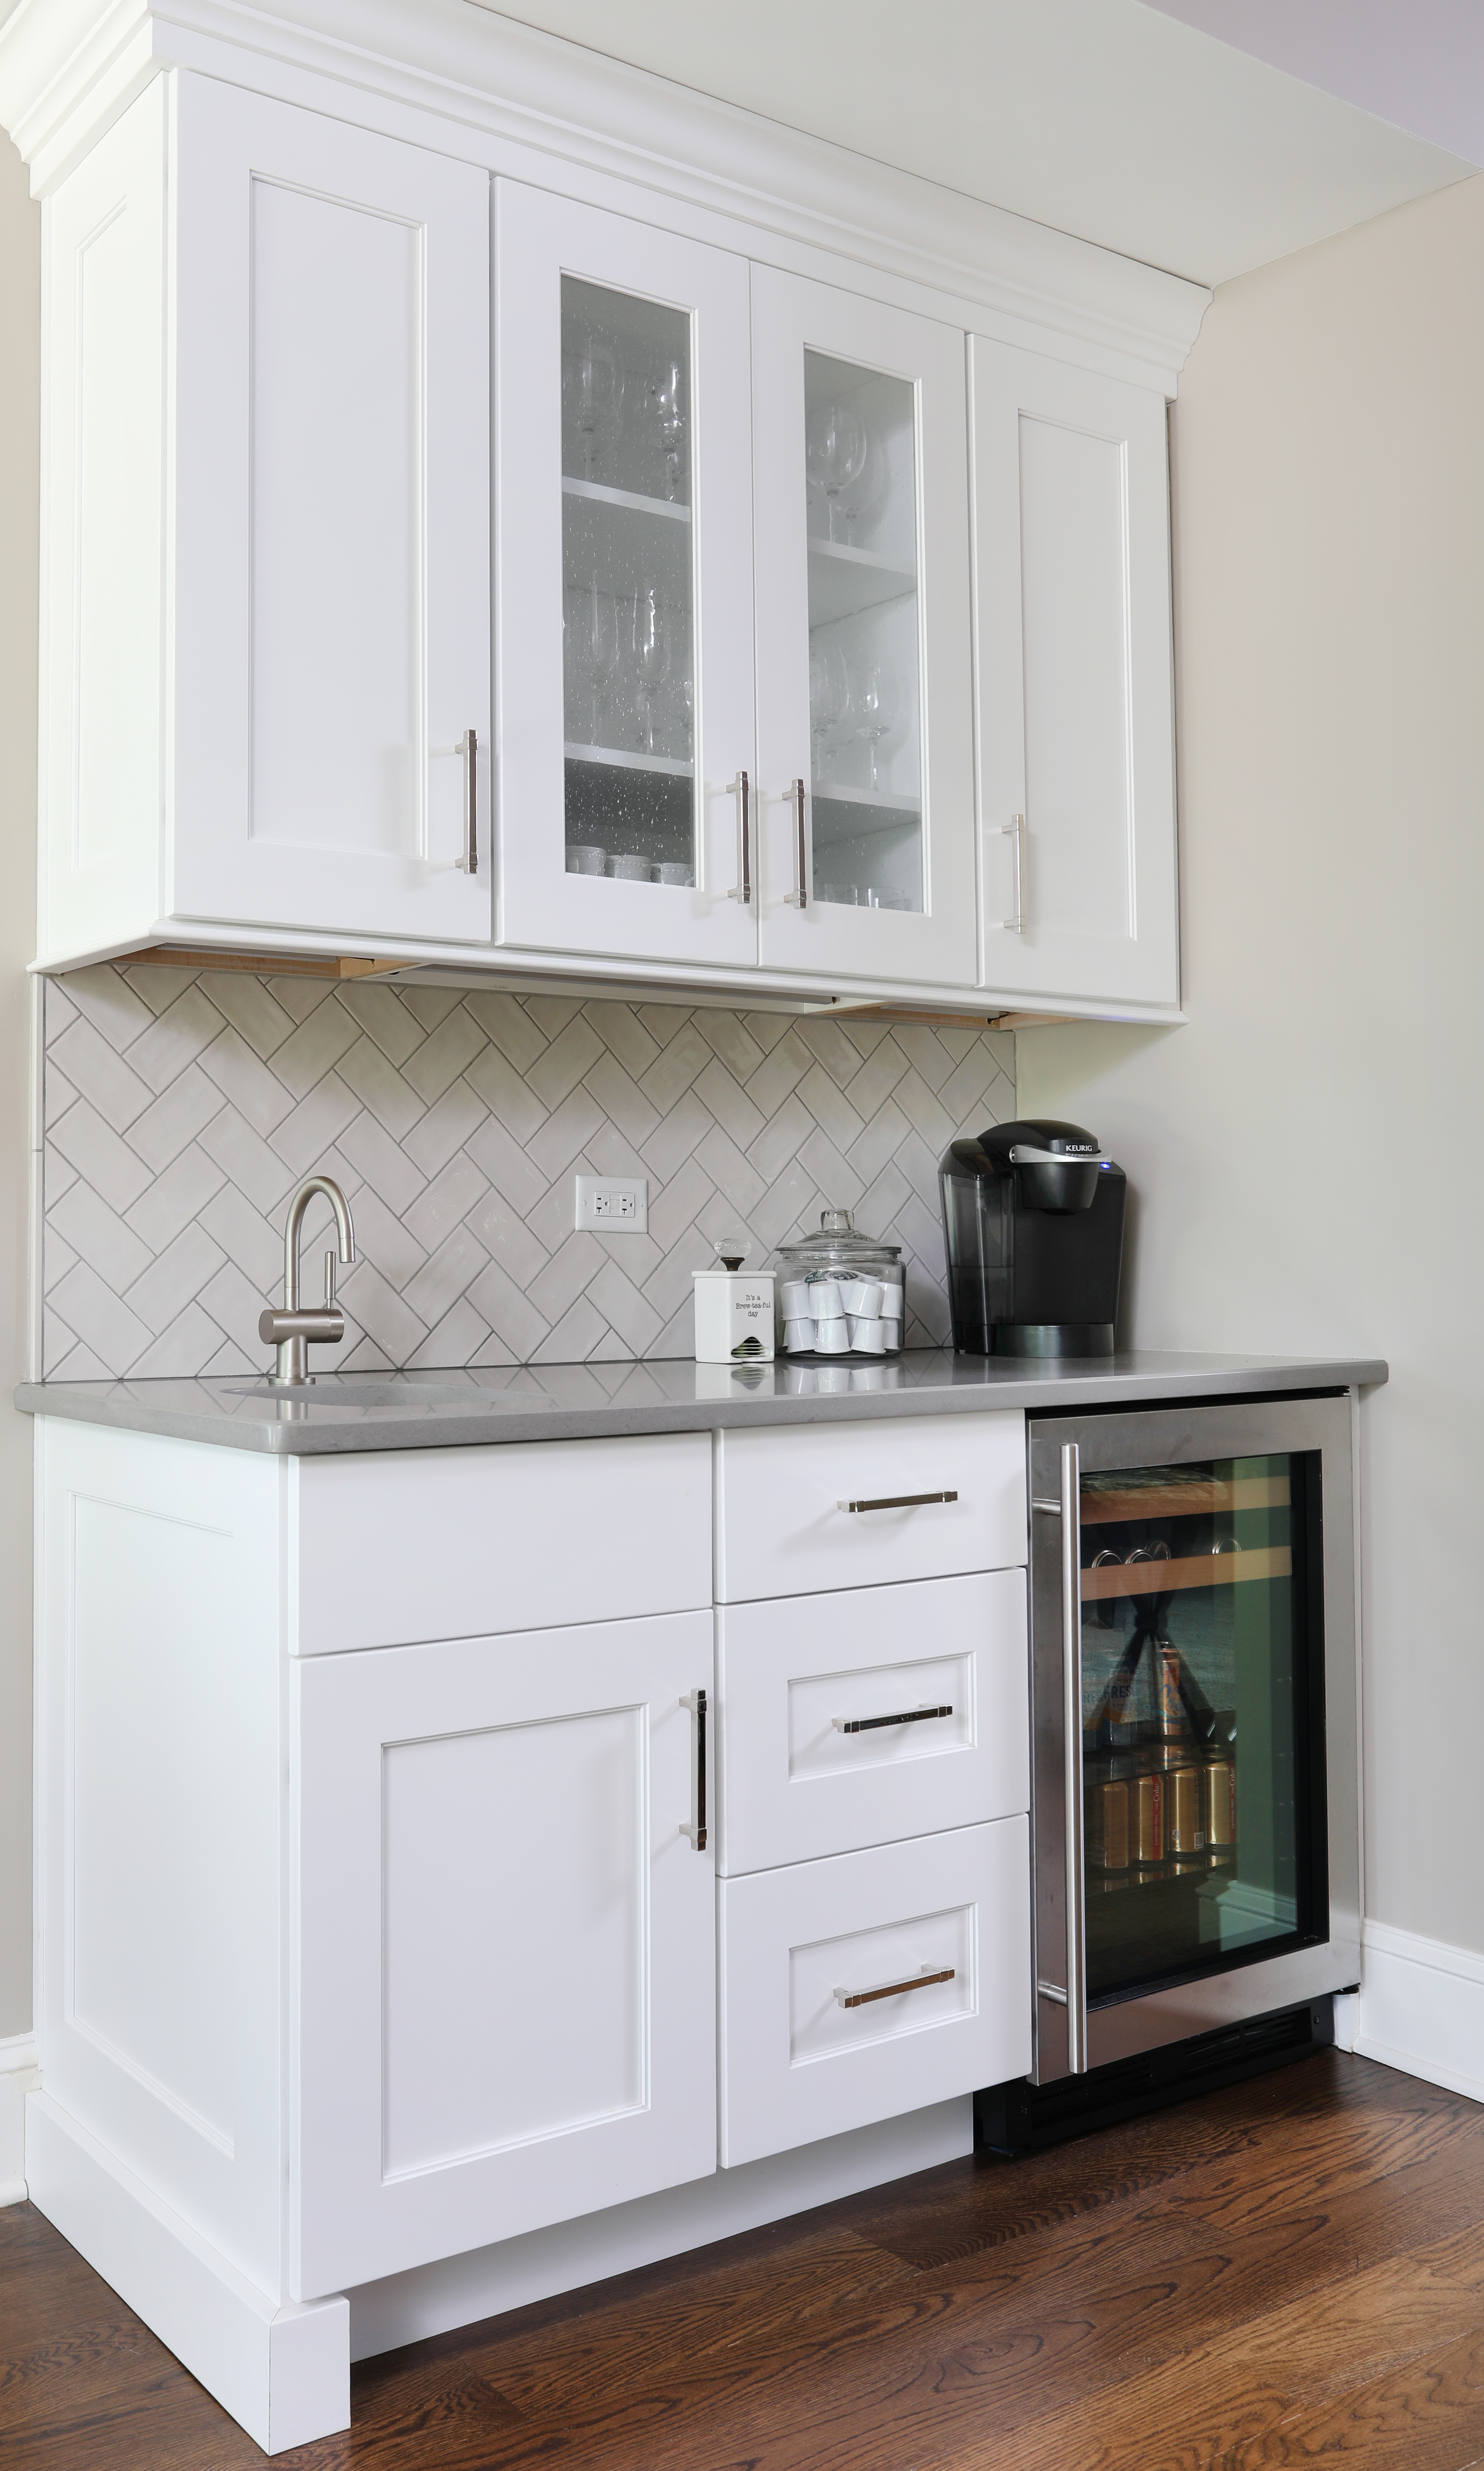 Incorporating A Beverage Center Into Your Kitchen Normandy Remodeling